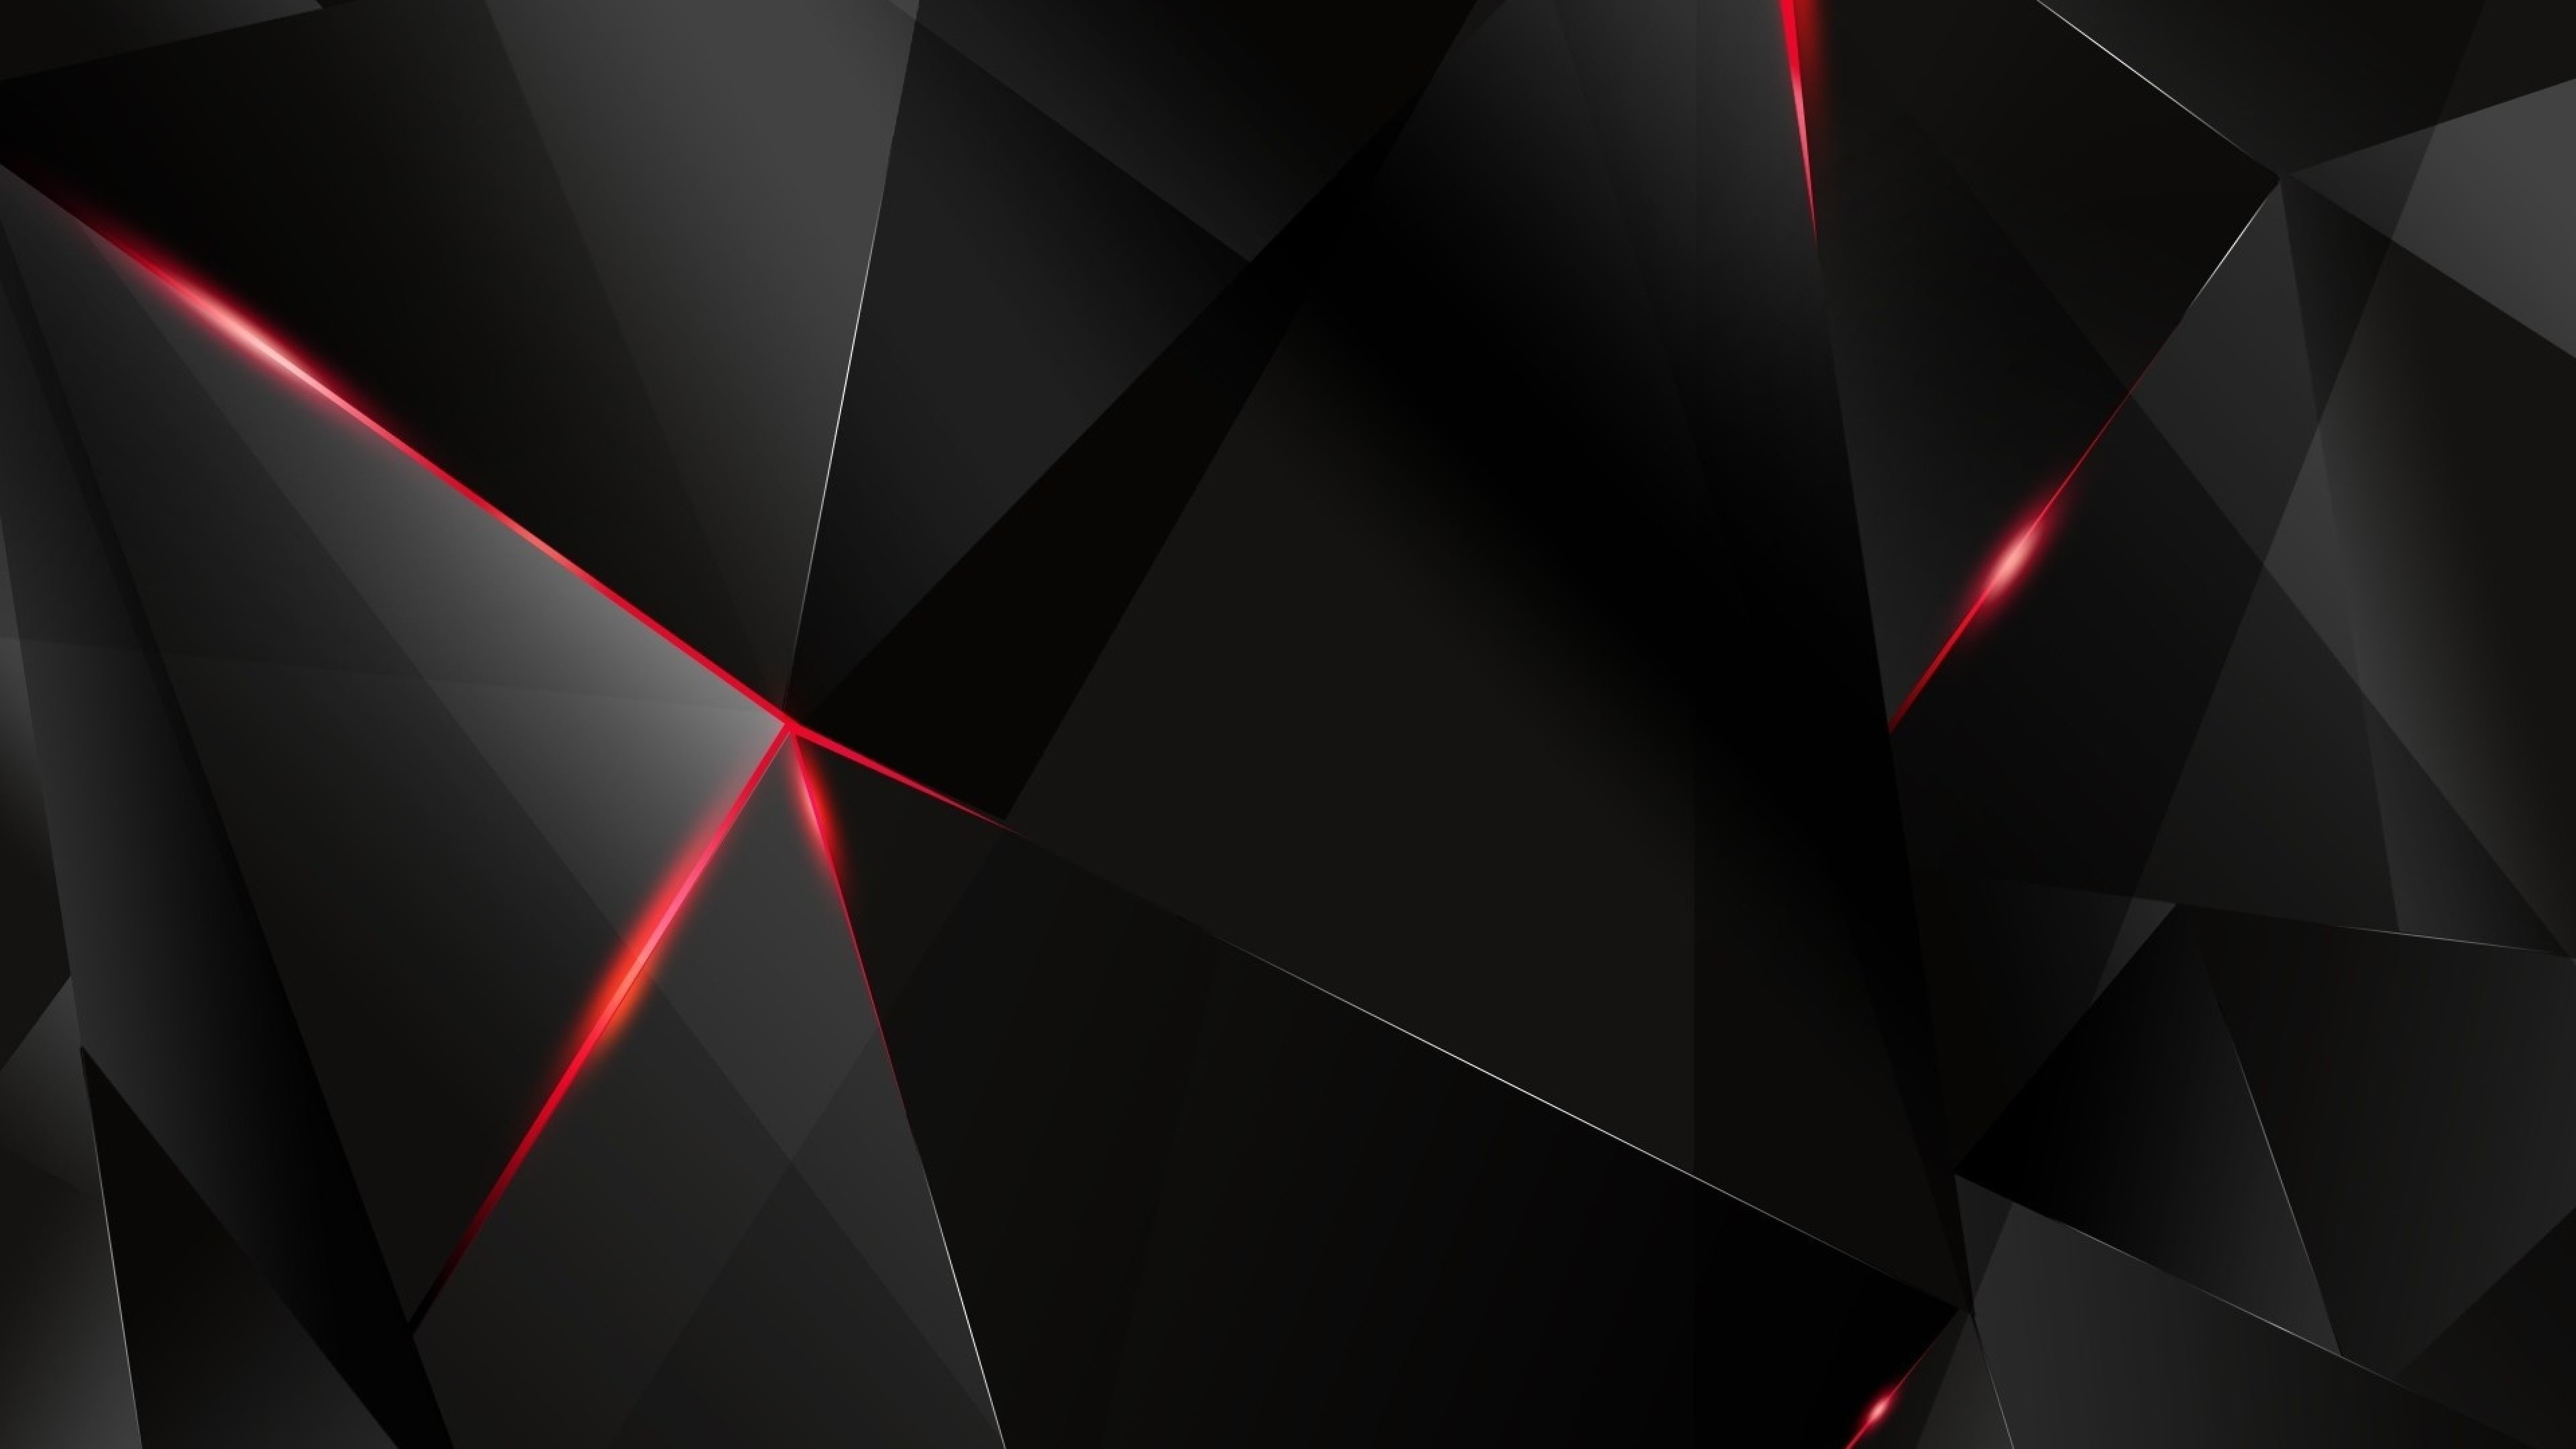 Res: 3840x2160, Related Wallpapers: